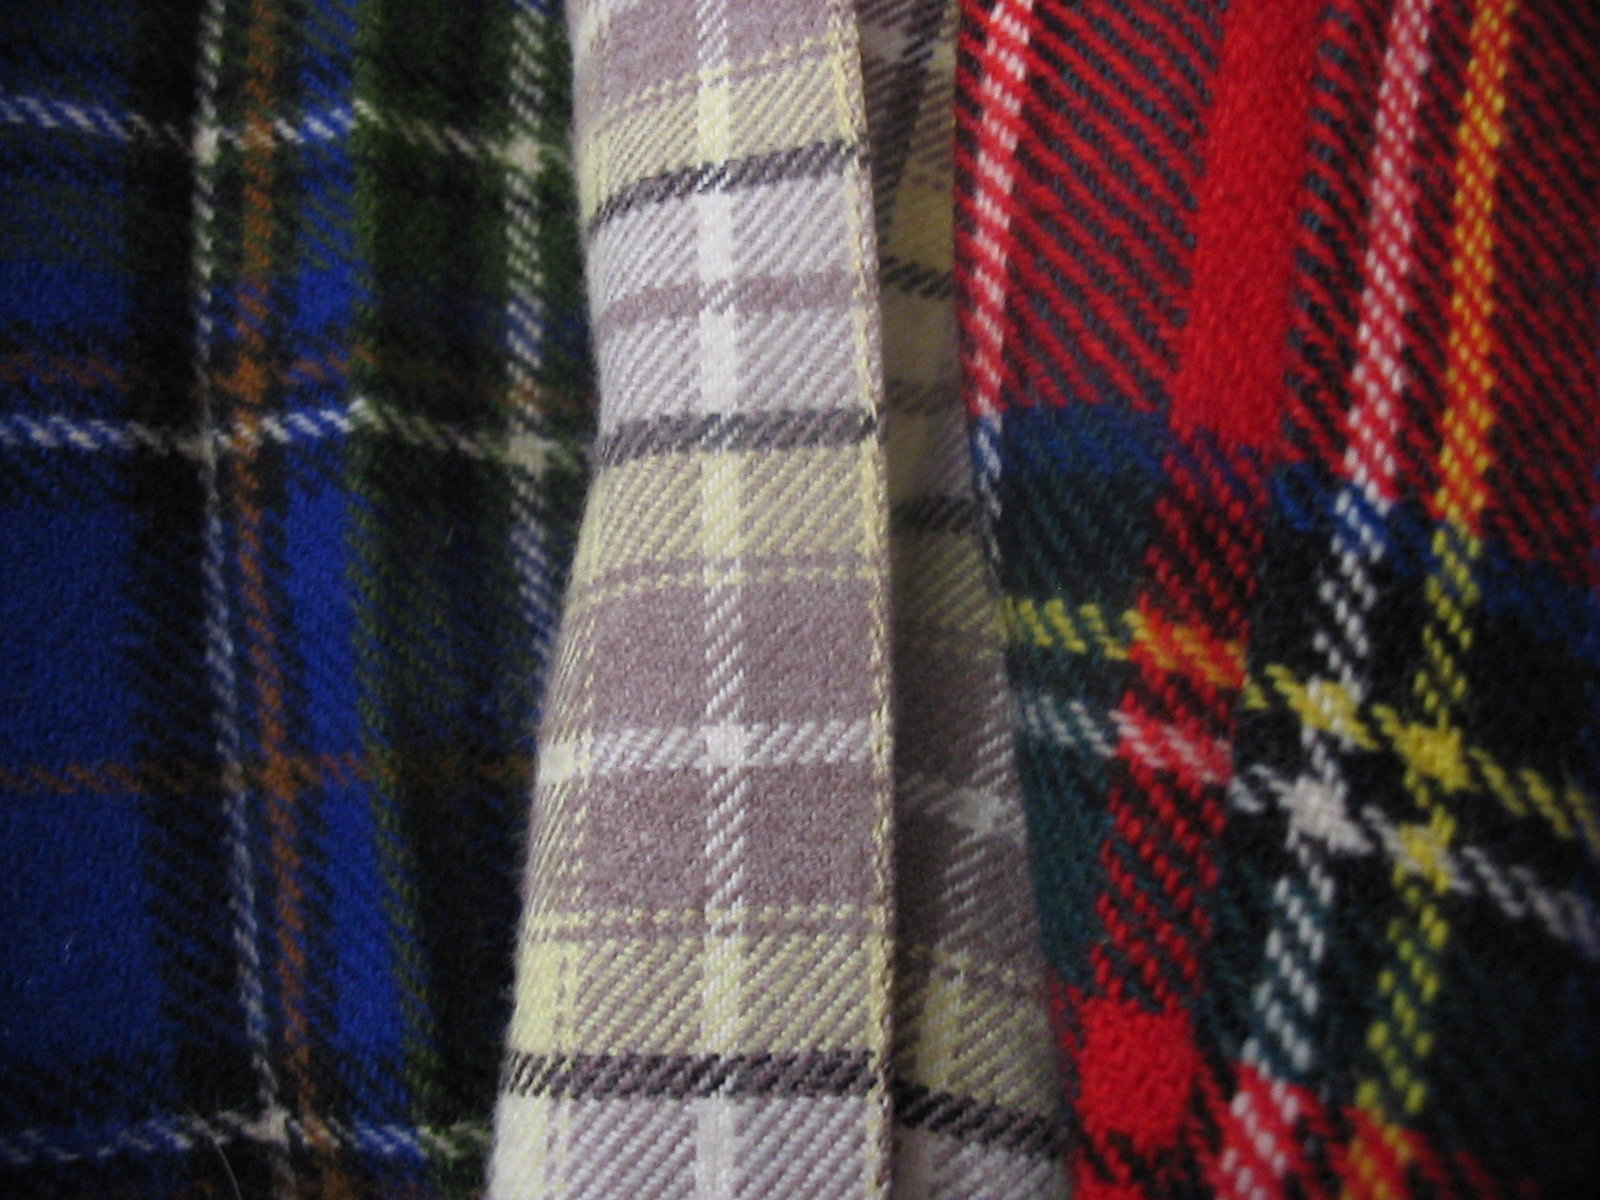 http://upload.wikimedia.org/wikipedia/commons/0/0d/Three_tartans.jpg